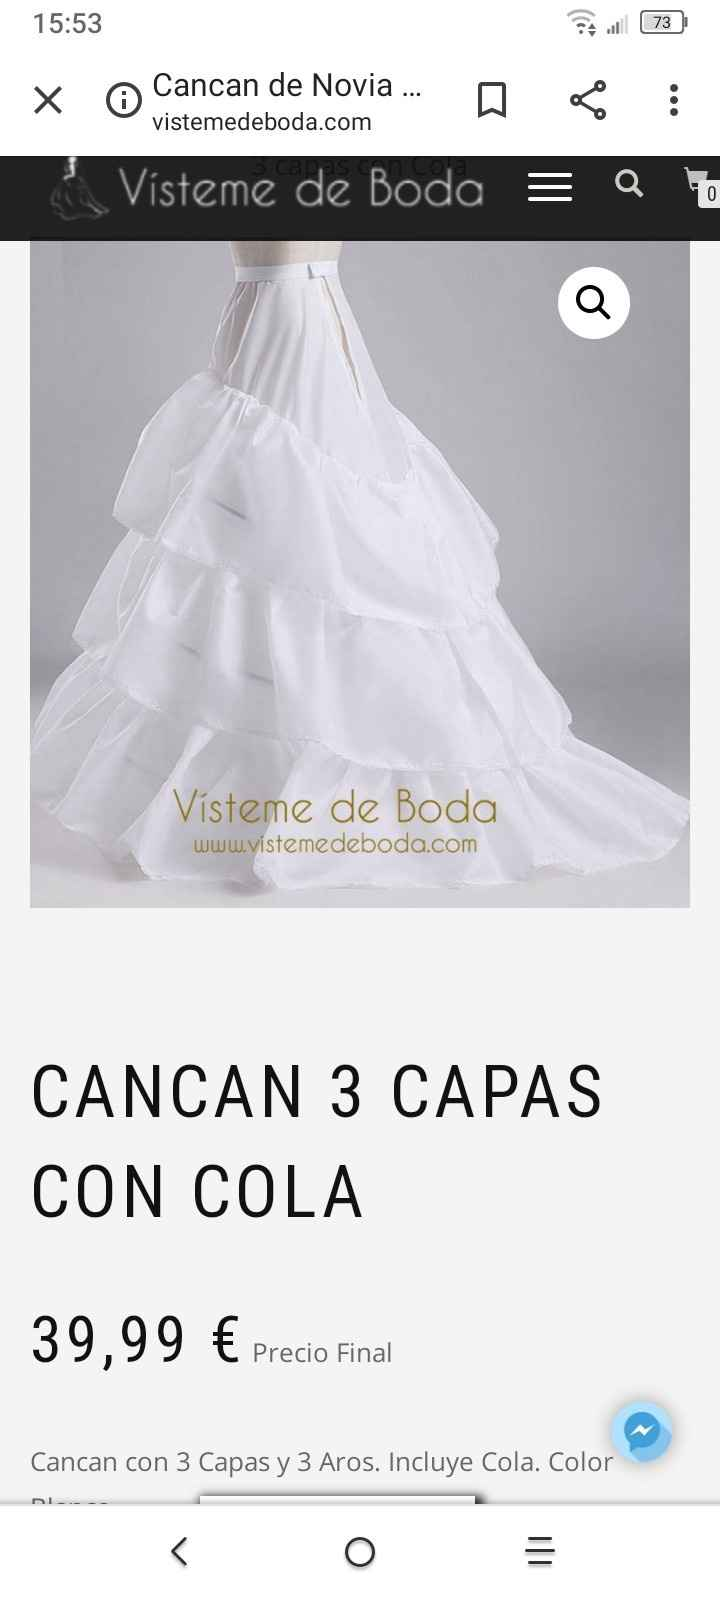 Cancán low cost - ¿Ideas? 7